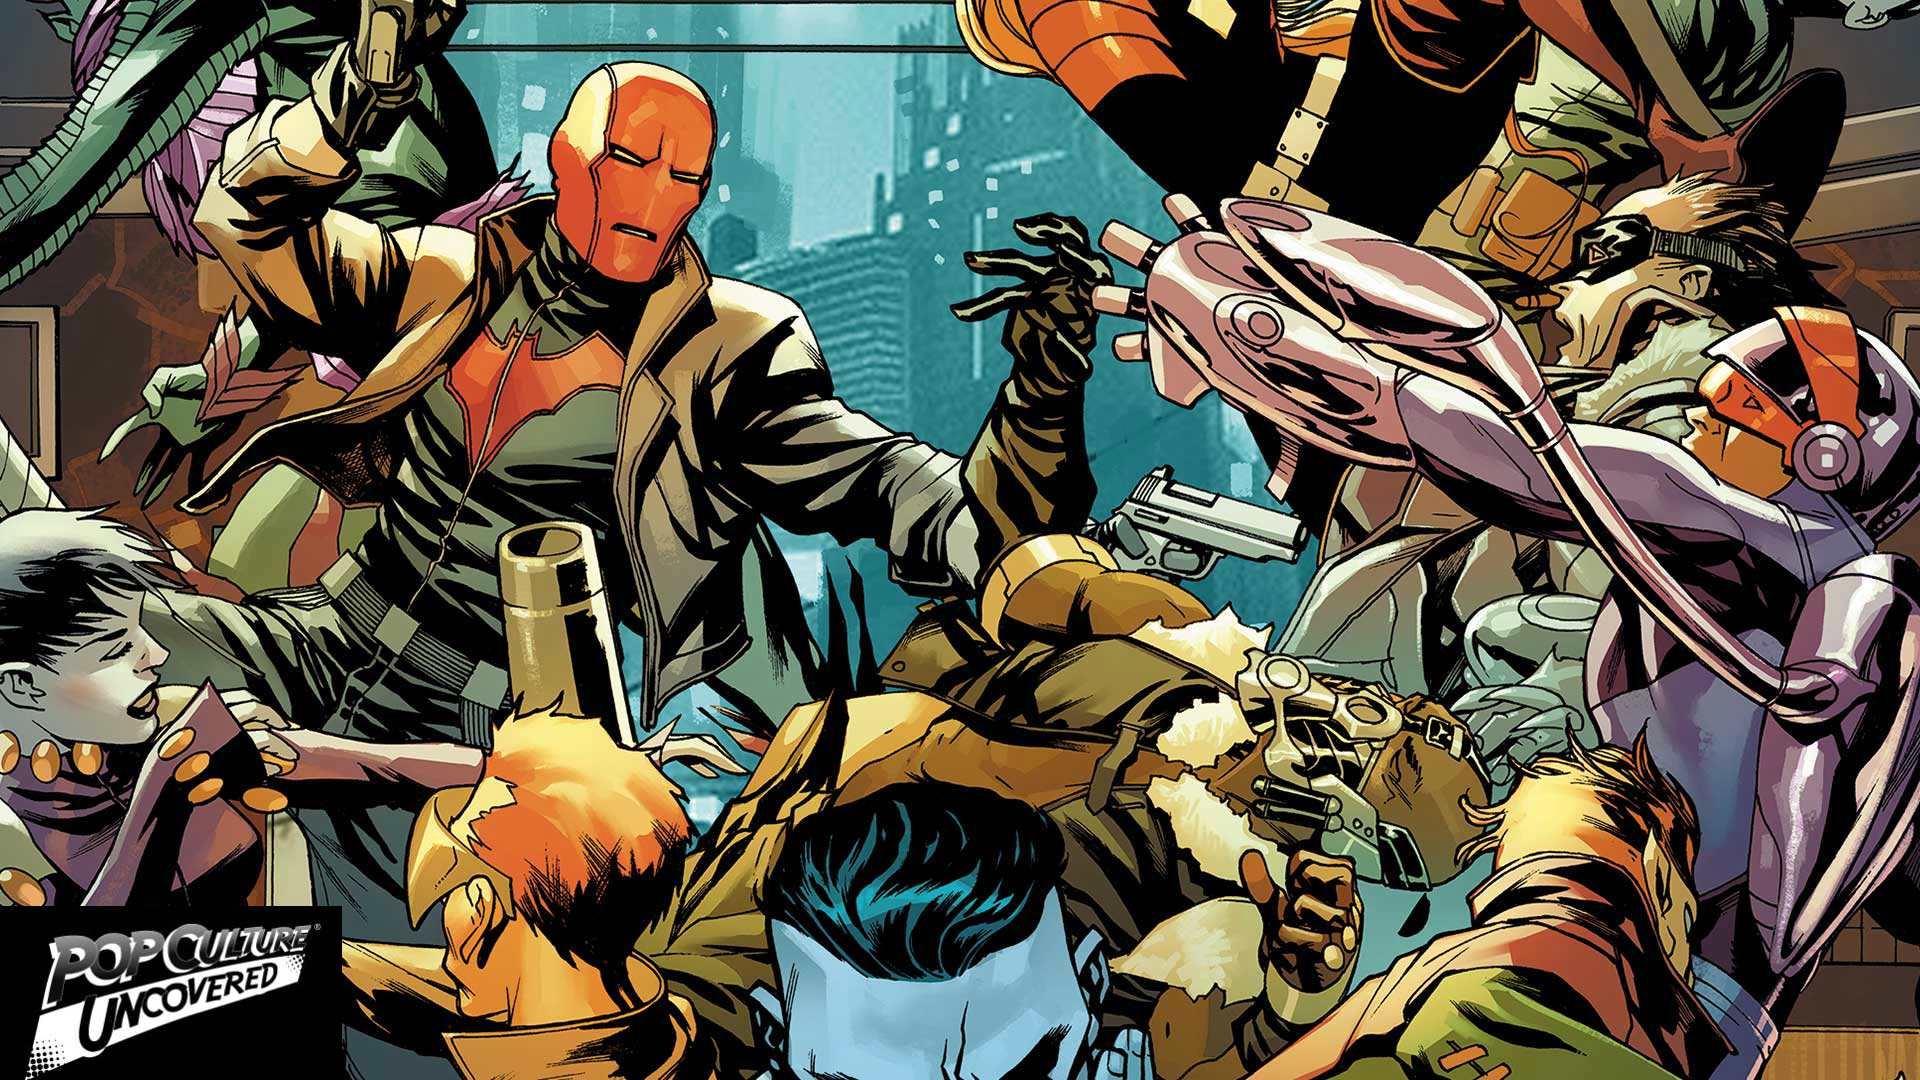 Review Brew Red Hood And The Outlaws 19 Pop Culture Uncovered